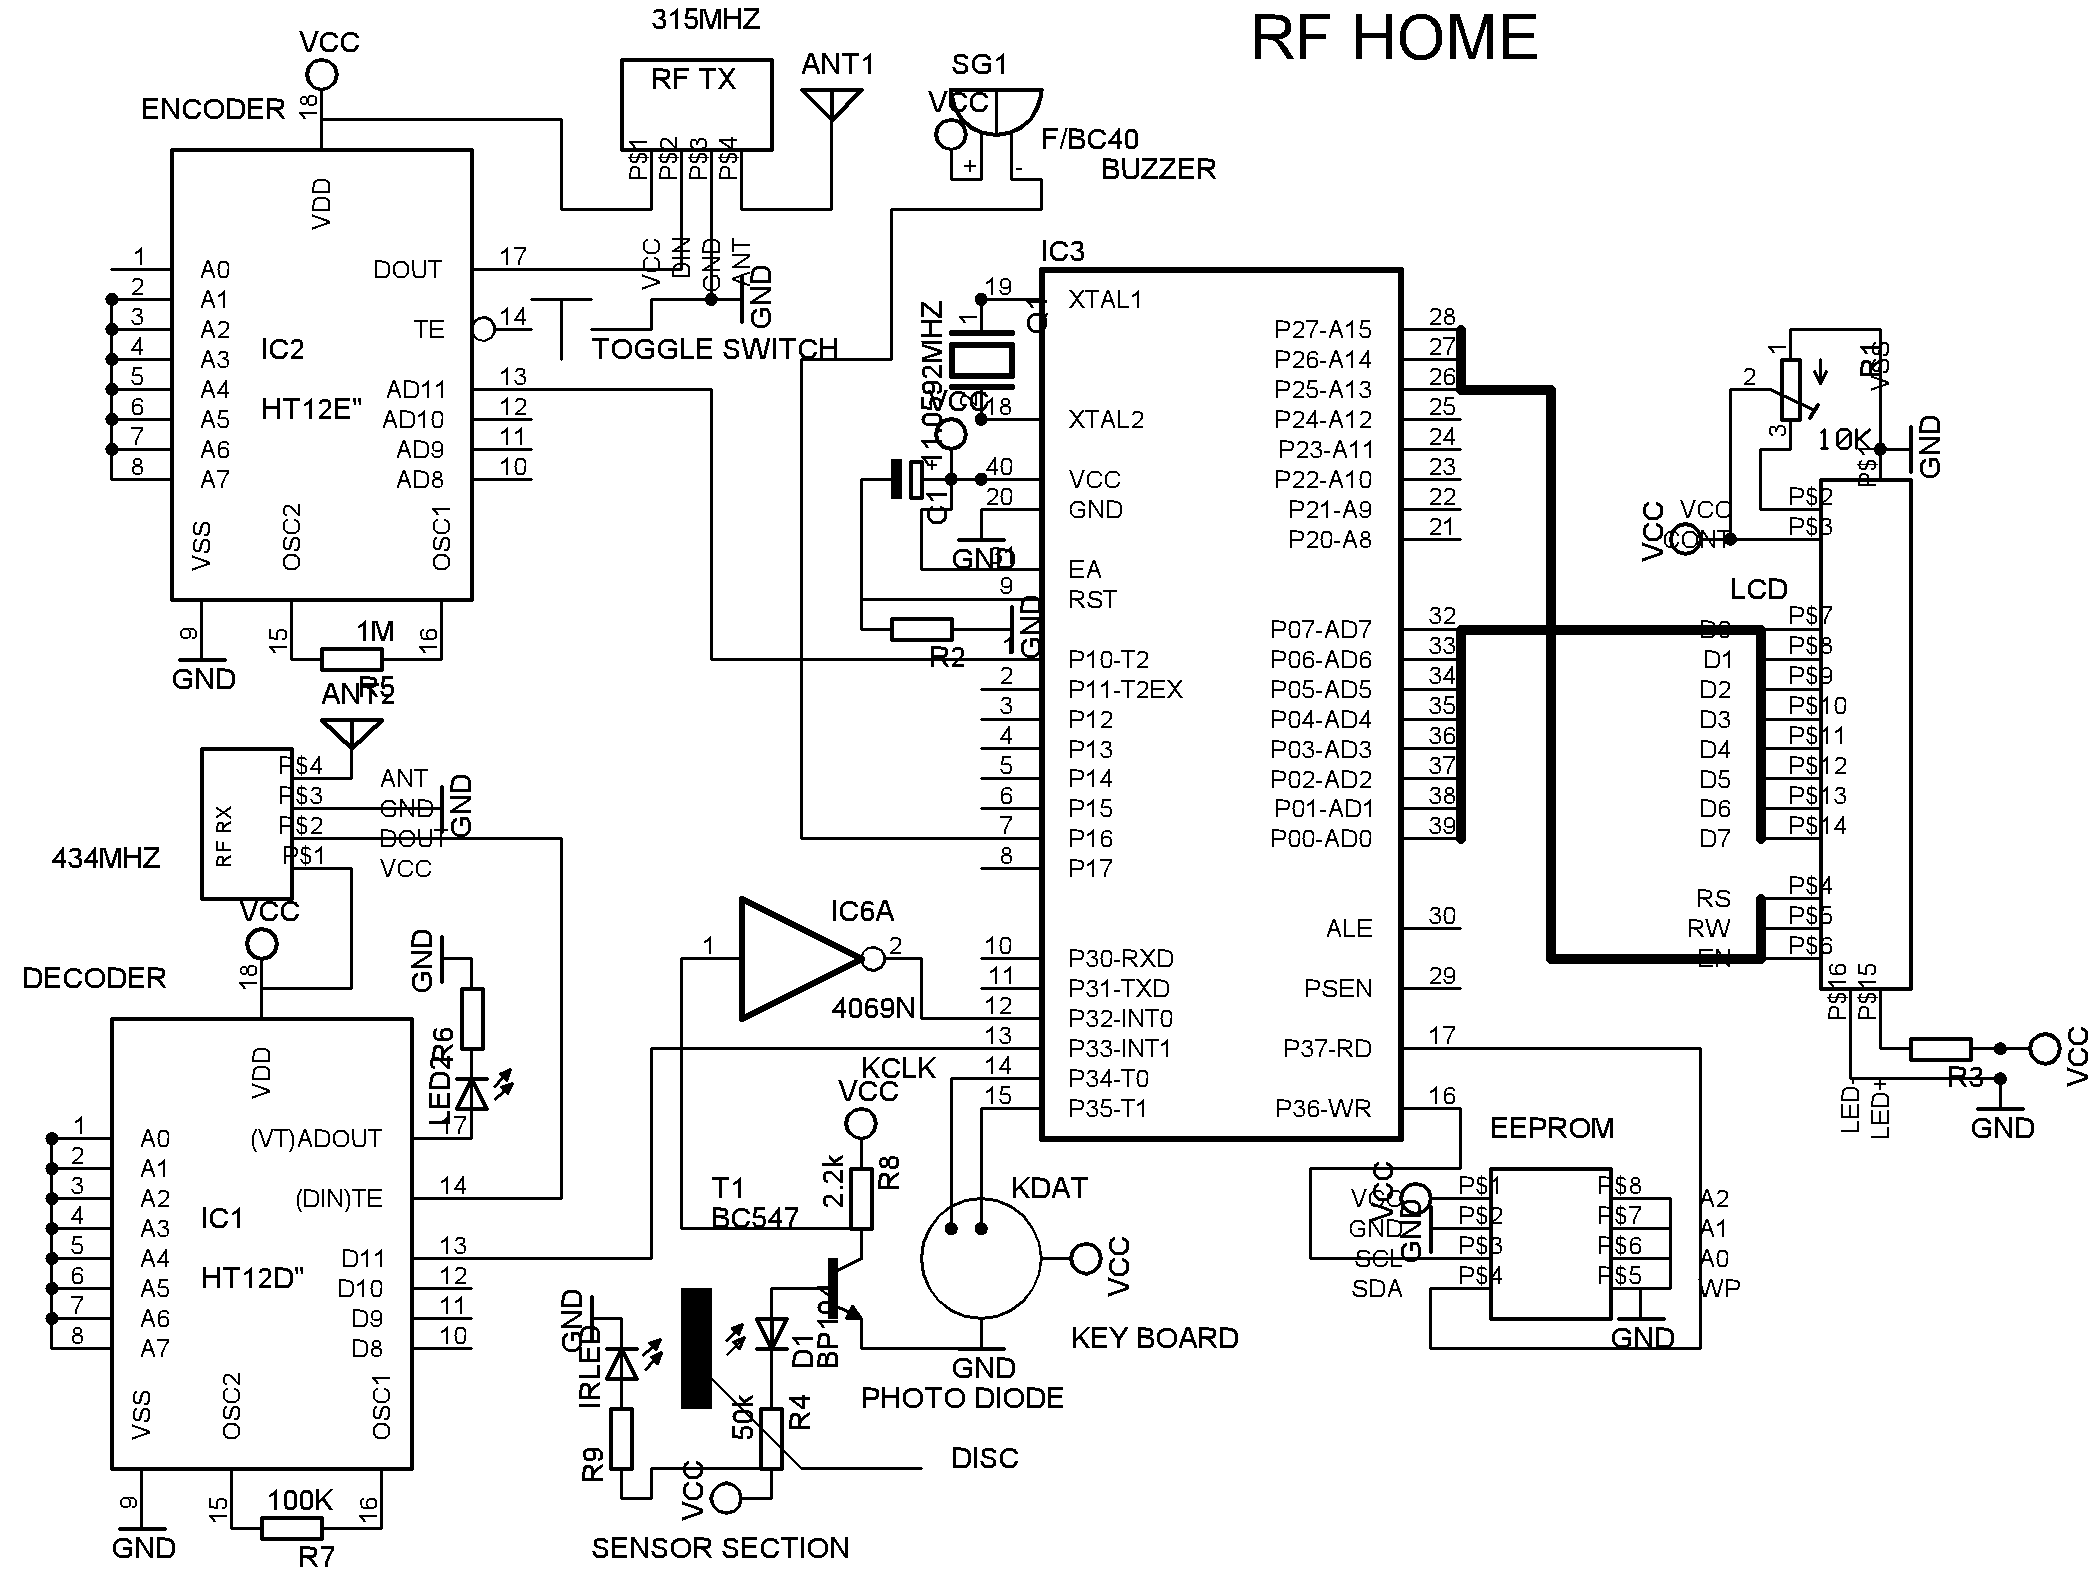 Forums / General help Guidance and Discussion / Circuit